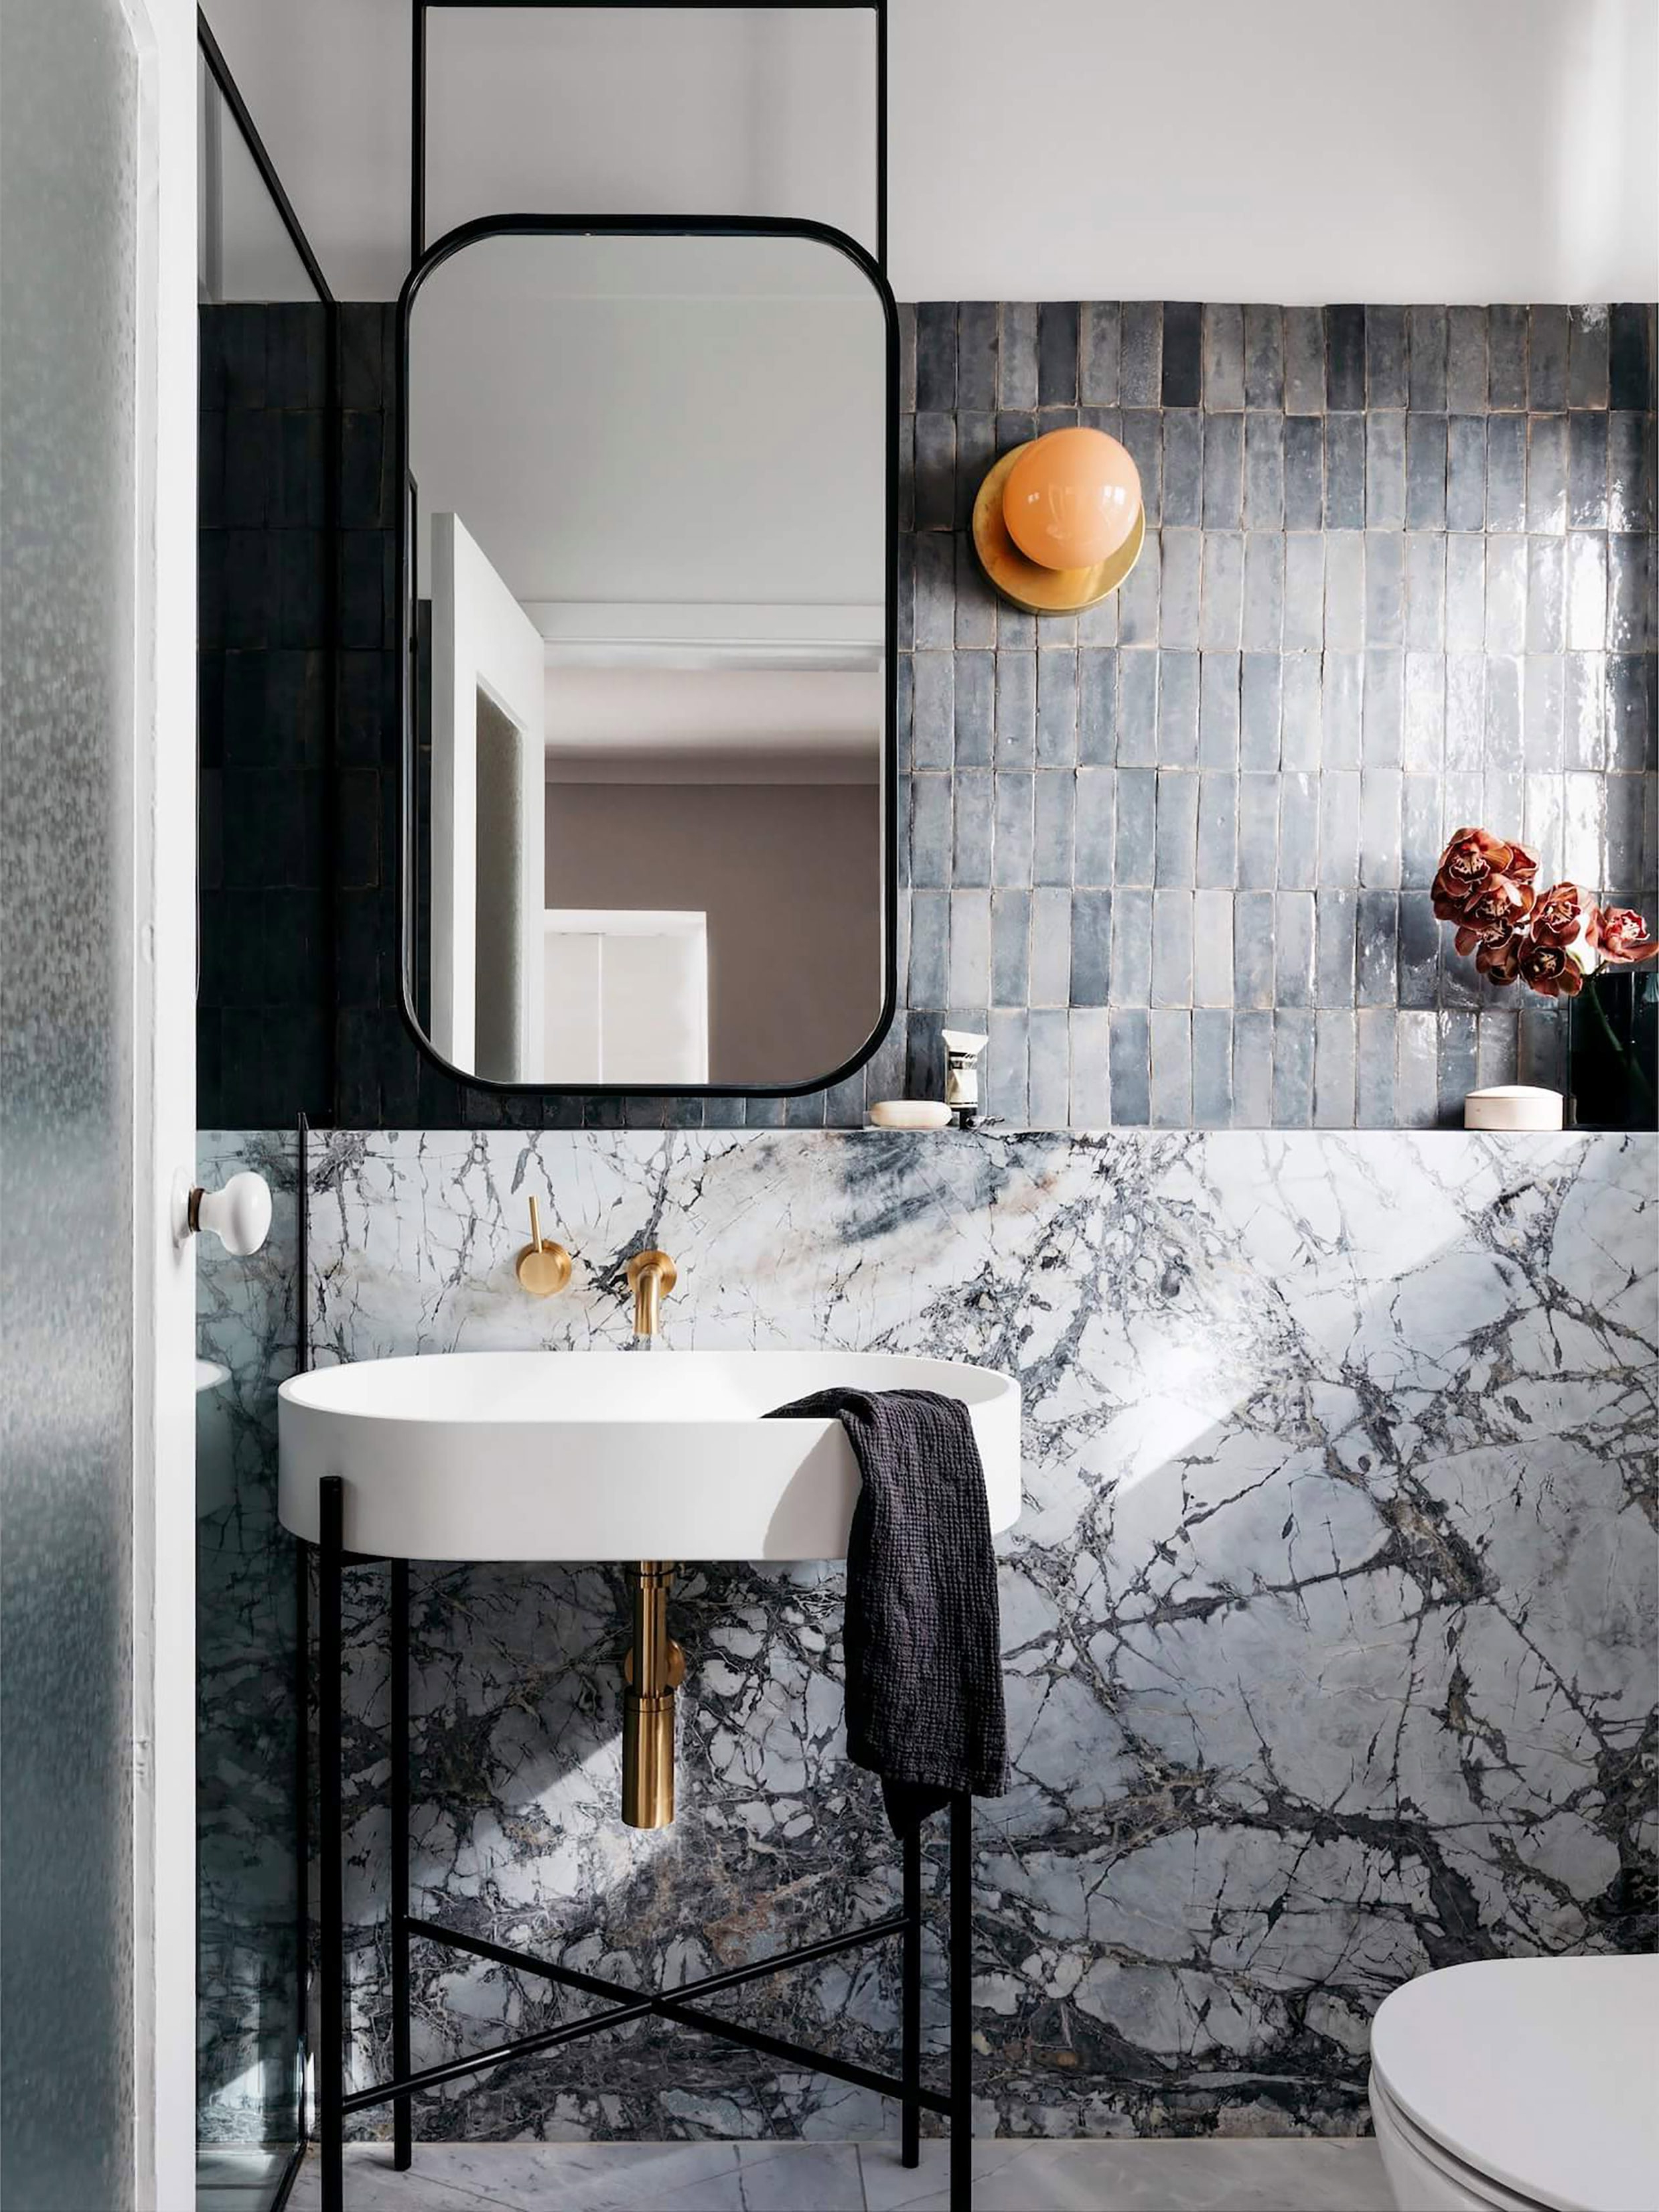 Small Bathroom Wall Mirrors Inside Recent 17 Fresh & Inspiring Bathroom Mirror Ideas To Shake Up Your (Gallery 10 of 20)